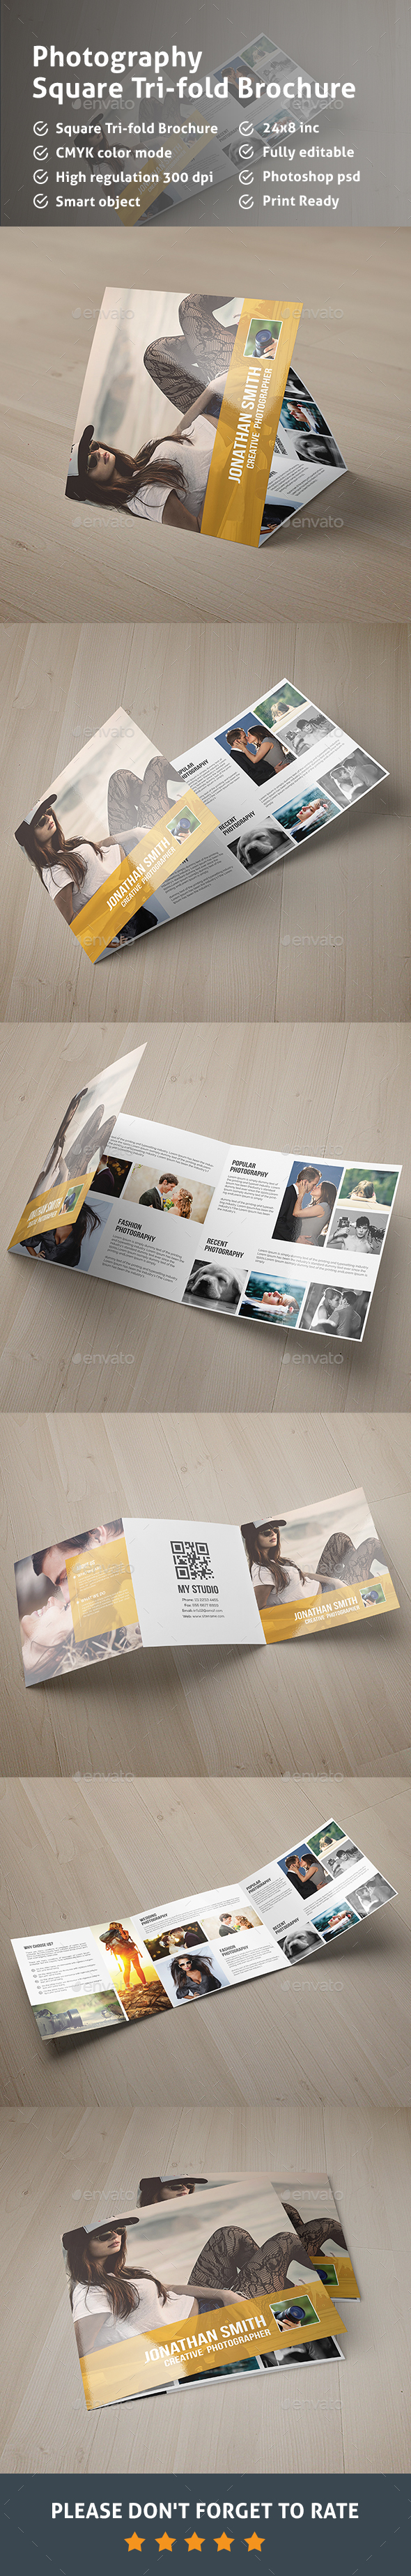 Square Tri- fold Photography Brochure - Corporate Brochures